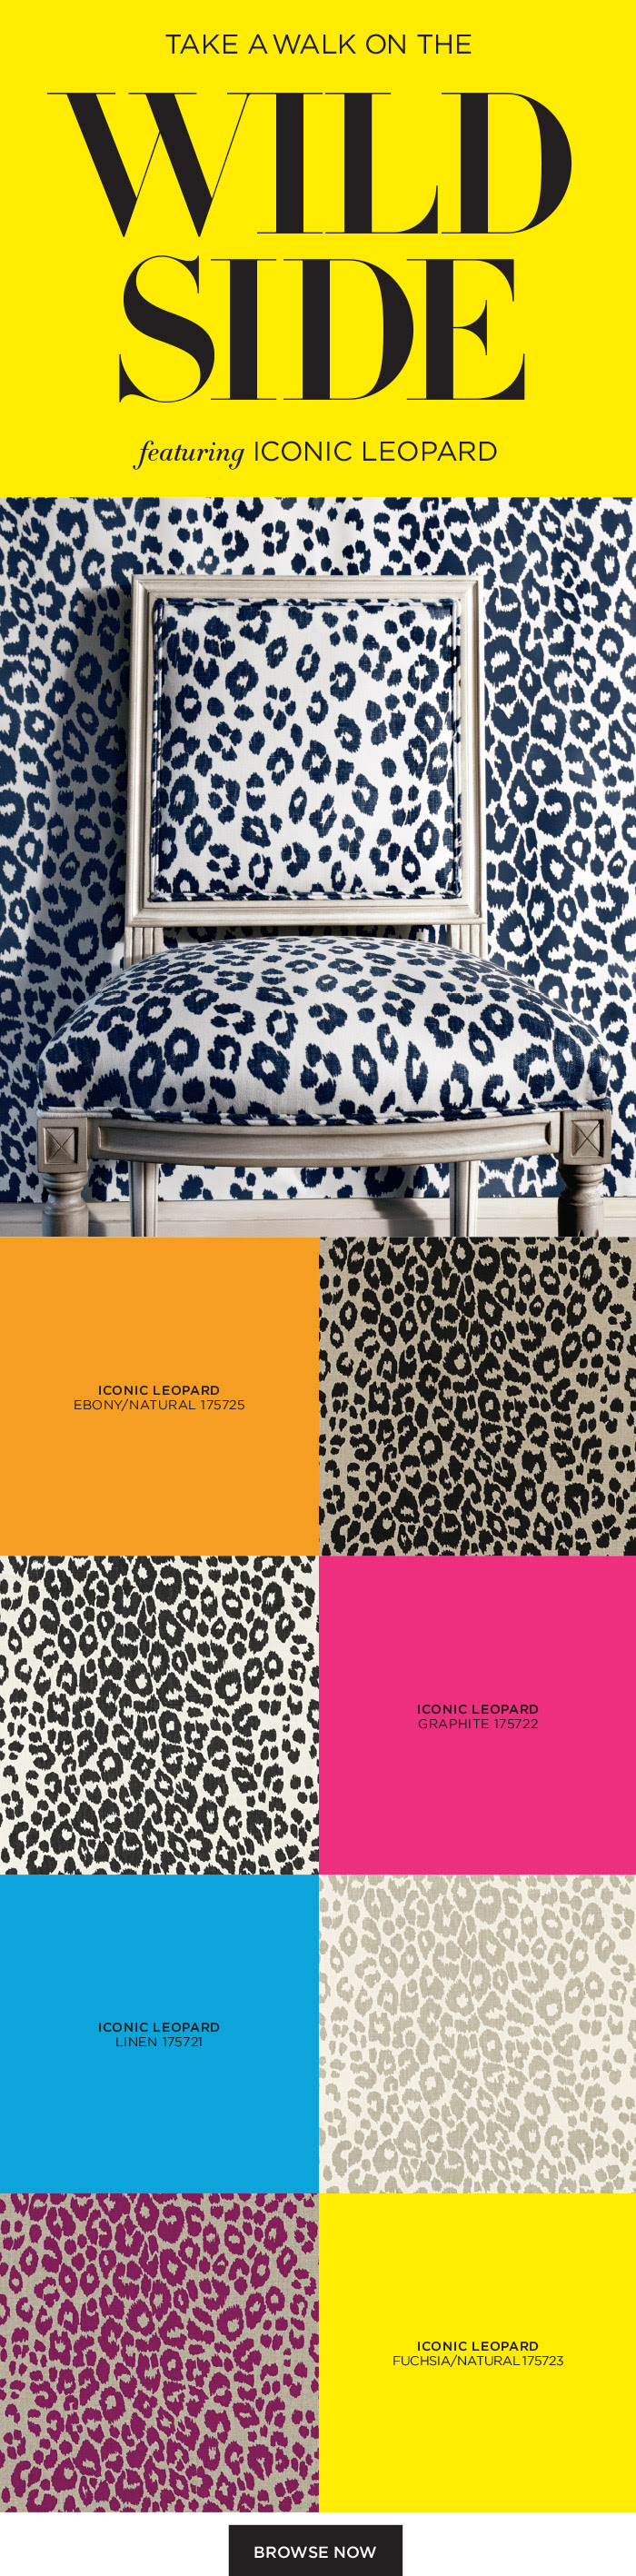 Iconic Leopard from our 125th Anniversary Collection